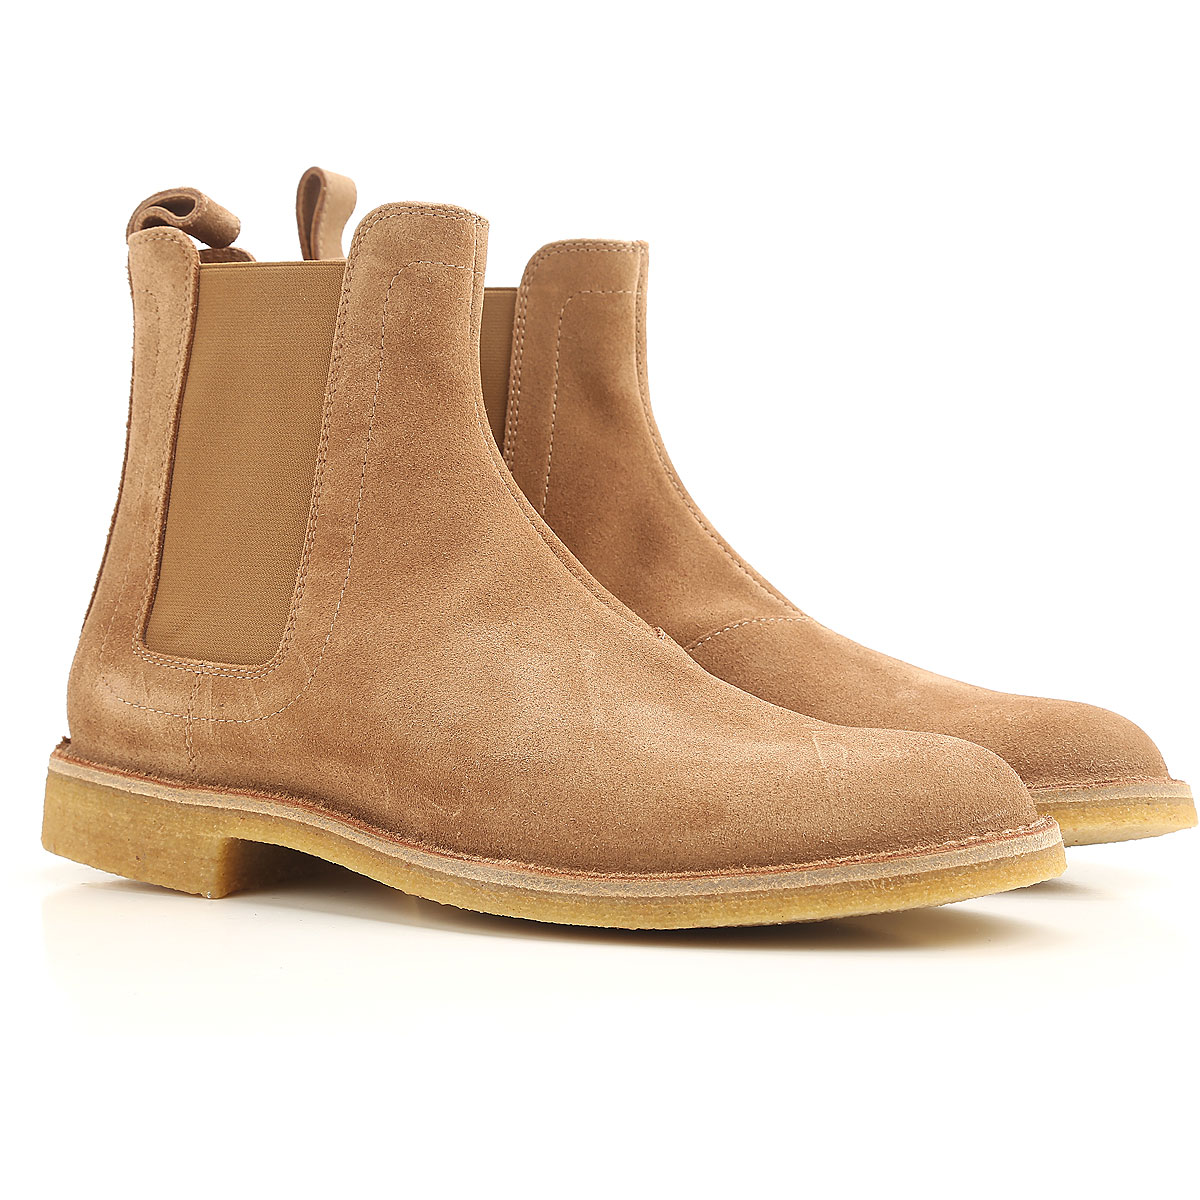 Boots for Men, Booties On Sale, Camel Brown, Leather, 2017, 7.5 8 Bottega Veneta